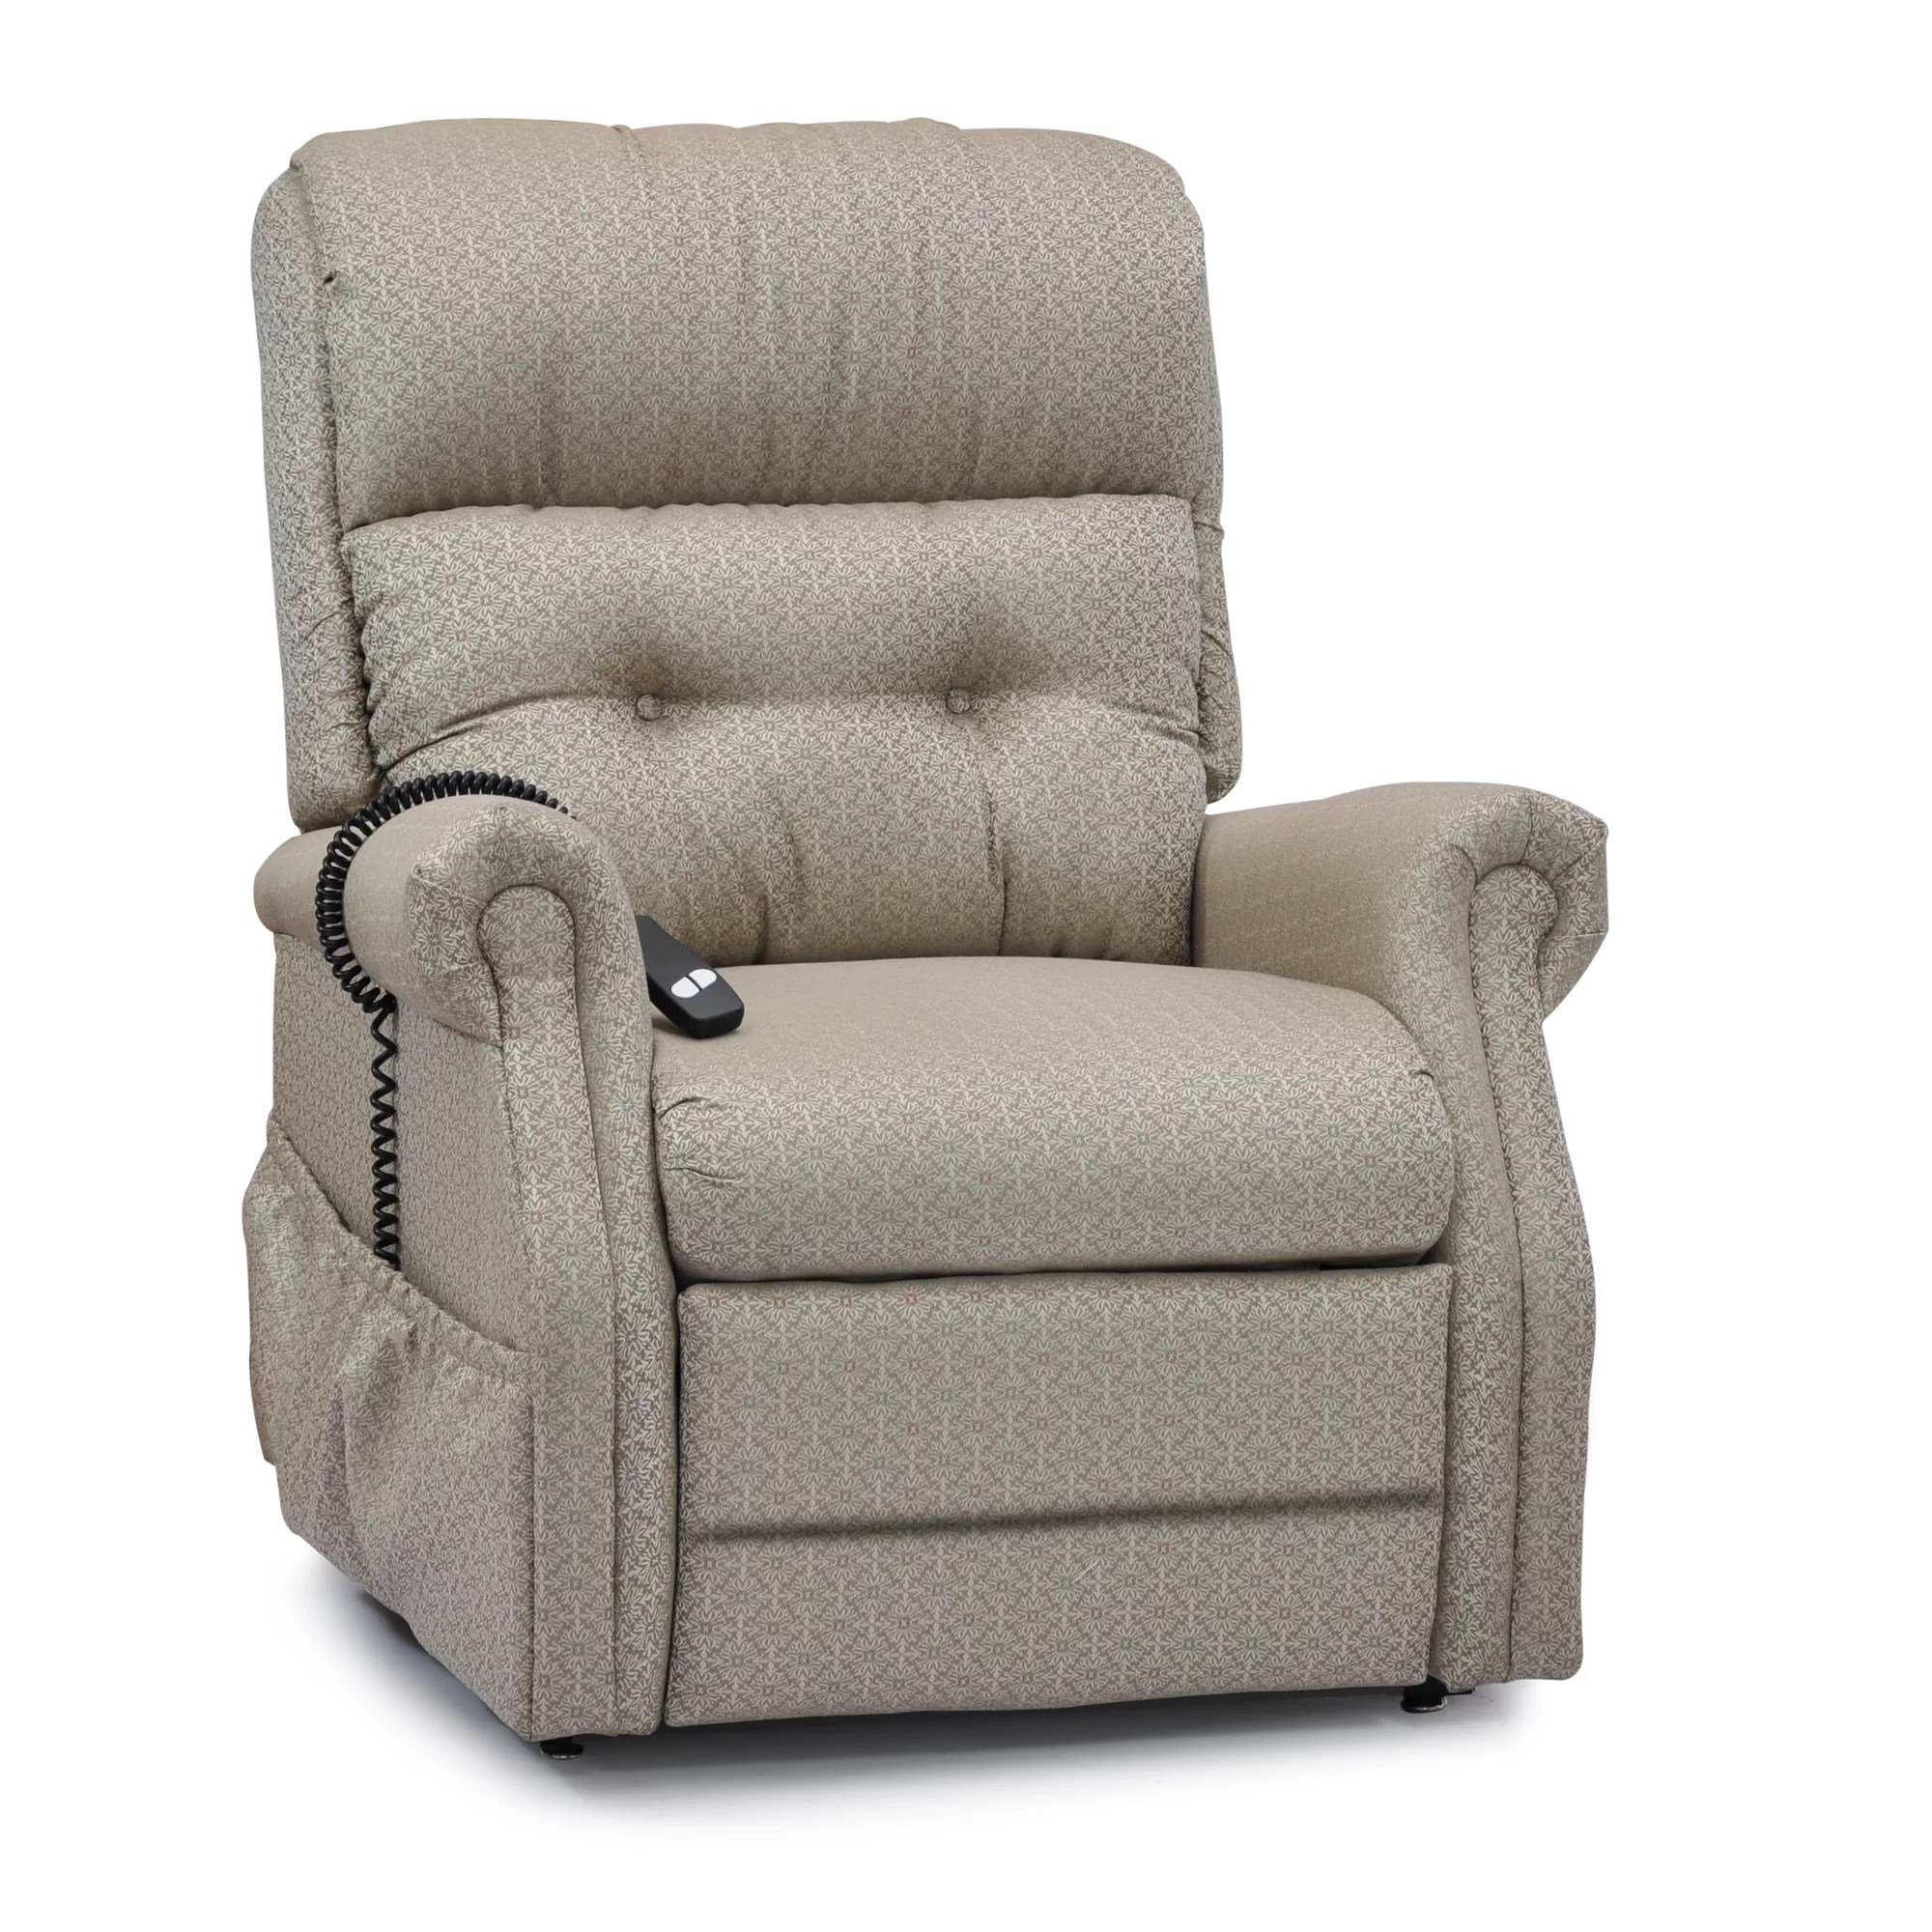 Med Lift Chairs Med Lift Two Way Reclining Lift Chair And Reviews Wayfair Ca